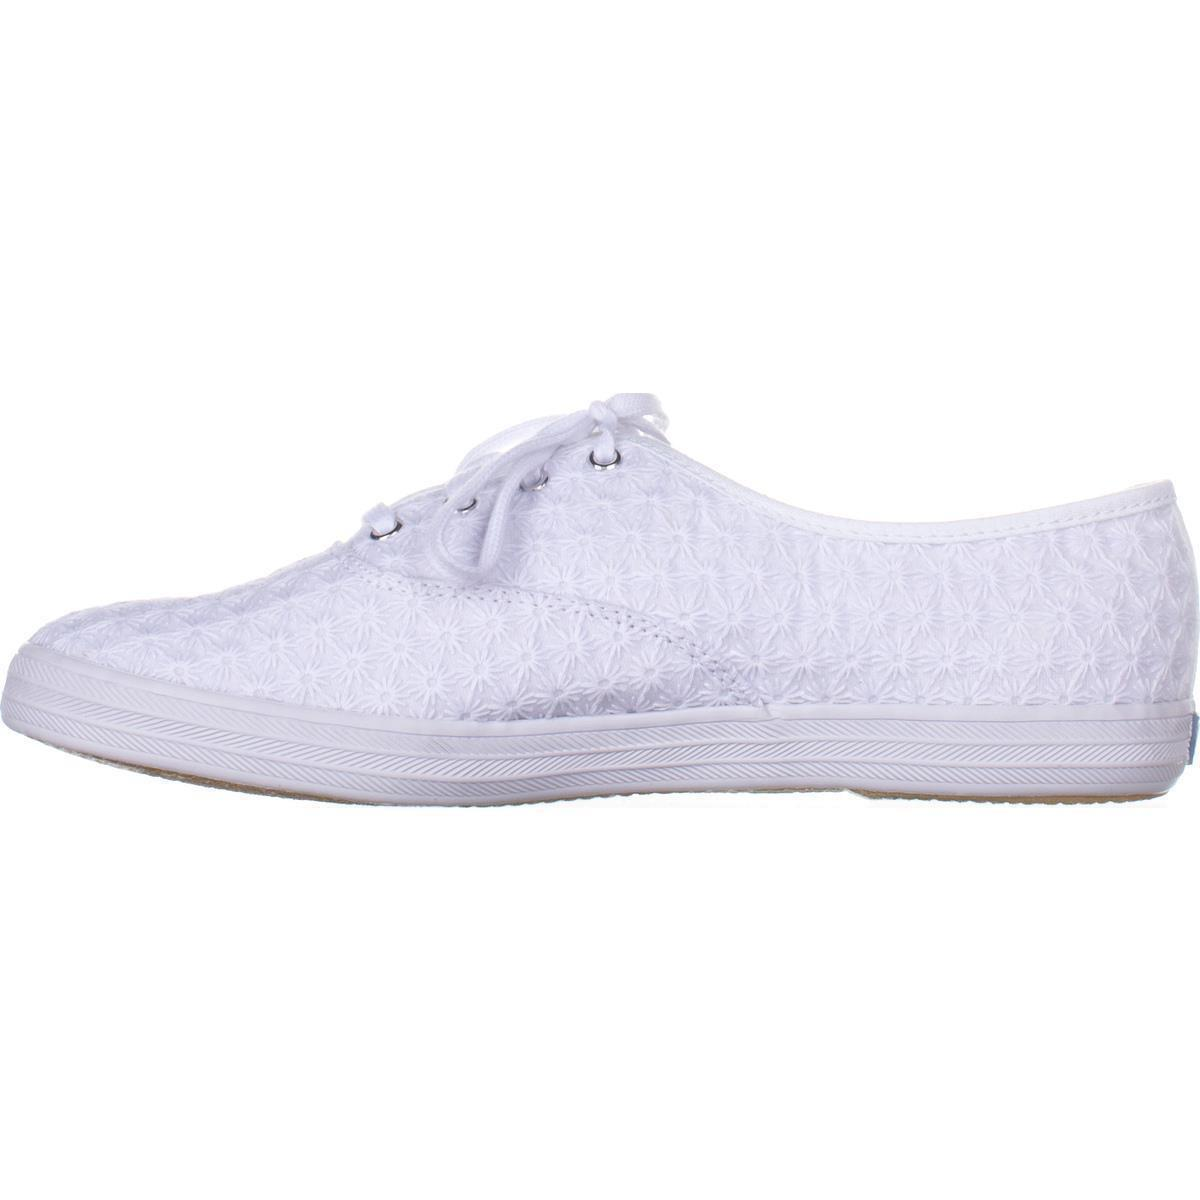 9a90c47c2c1 Lyst - Keds Champion Mini Daisy Fashion Sneakers in White